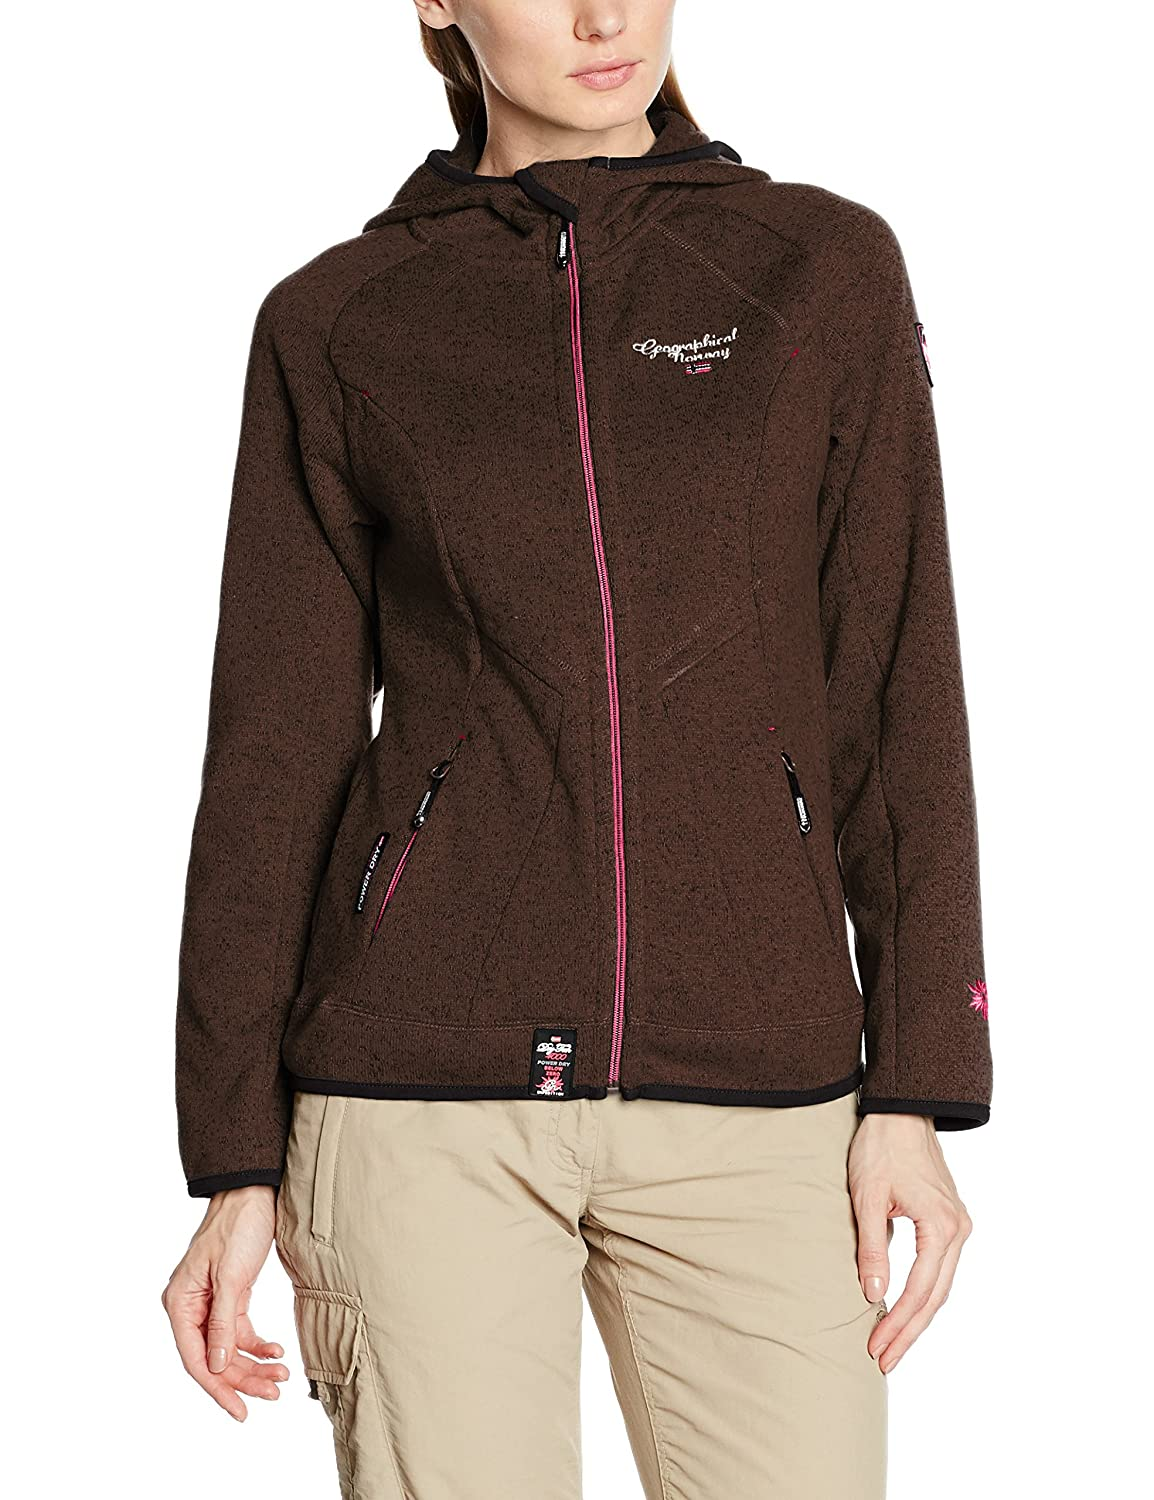 Geographical Norway Chaleco para Mujer